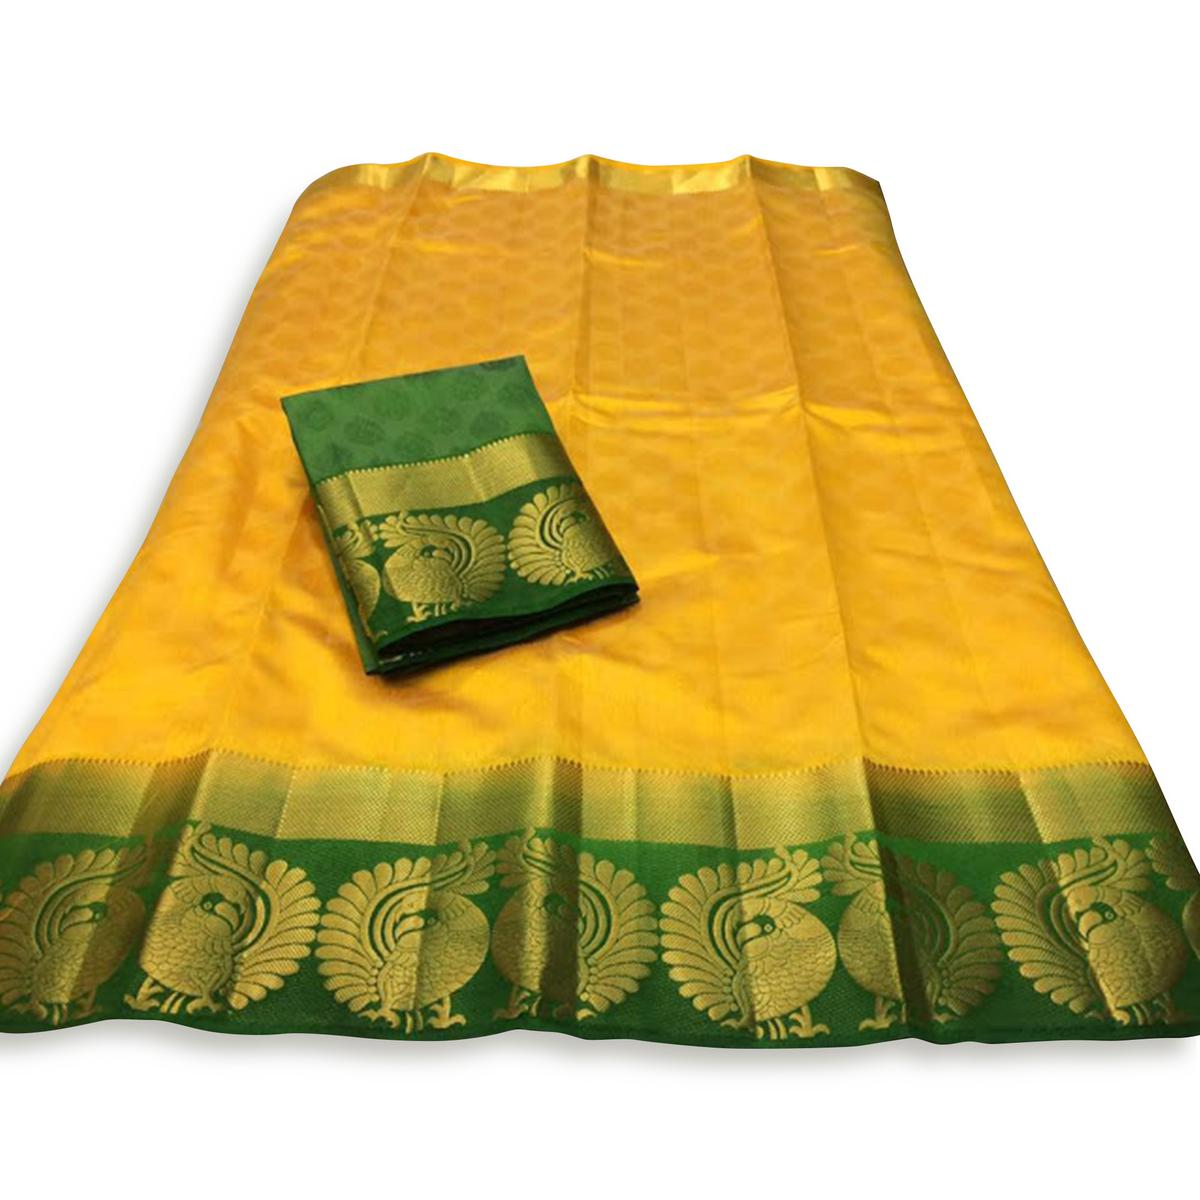 Marvellous Yellow-Green Colored Festive Wear Cotton Silk Saree